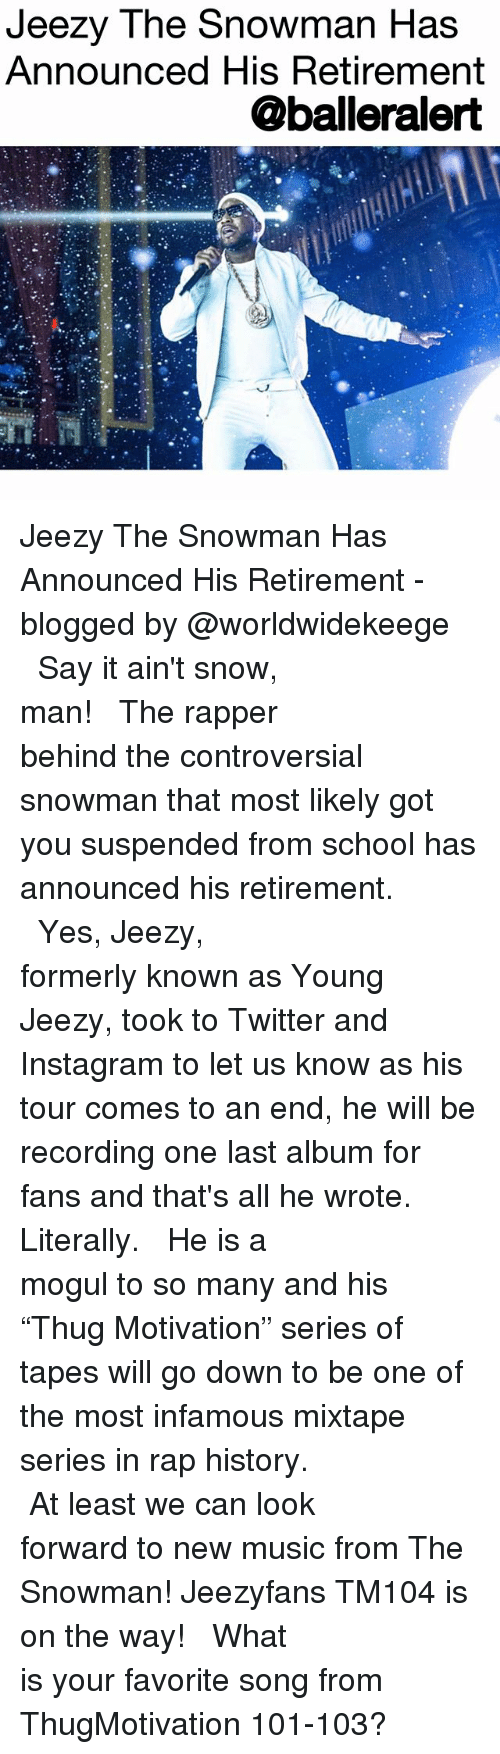 "Instagram, Young Jeezy, and Memes: Jeezy The Snowman Has  Announced His Retirement  @balleralert Jeezy The Snowman Has Announced His Retirement - blogged by @worldwidekeege ⠀⠀⠀⠀⠀⠀⠀⠀⠀ ⠀⠀⠀⠀⠀⠀⠀⠀⠀ Say it ain't snow, man! ⠀⠀⠀⠀⠀⠀⠀⠀⠀ ⠀⠀⠀⠀⠀⠀⠀⠀⠀ The rapper behind the controversial snowman that most likely got you suspended from school has announced his retirement. ⠀⠀⠀⠀⠀⠀⠀⠀⠀ ⠀⠀⠀⠀⠀⠀⠀⠀⠀ Yes, Jeezy, formerly known as Young Jeezy, took to Twitter and Instagram to let us know as his tour comes to an end, he will be recording one last album for fans and that's all he wrote. Literally. ⠀⠀⠀⠀⠀⠀⠀⠀⠀ ⠀⠀⠀⠀⠀⠀⠀⠀⠀ He is a mogul to so many and his ""Thug Motivation"" series of tapes will go down to be one of the most infamous mixtape series in rap history. ⠀⠀⠀⠀⠀⠀⠀⠀⠀ ⠀⠀⠀⠀⠀⠀⠀⠀⠀ At least we can look forward to new music from The Snowman! Jeezyfans TM104 is on the way! ⠀⠀⠀⠀⠀⠀⠀⠀⠀ ⠀⠀⠀⠀⠀⠀⠀⠀⠀ What is your favorite song from ThugMotivation 101-103?"